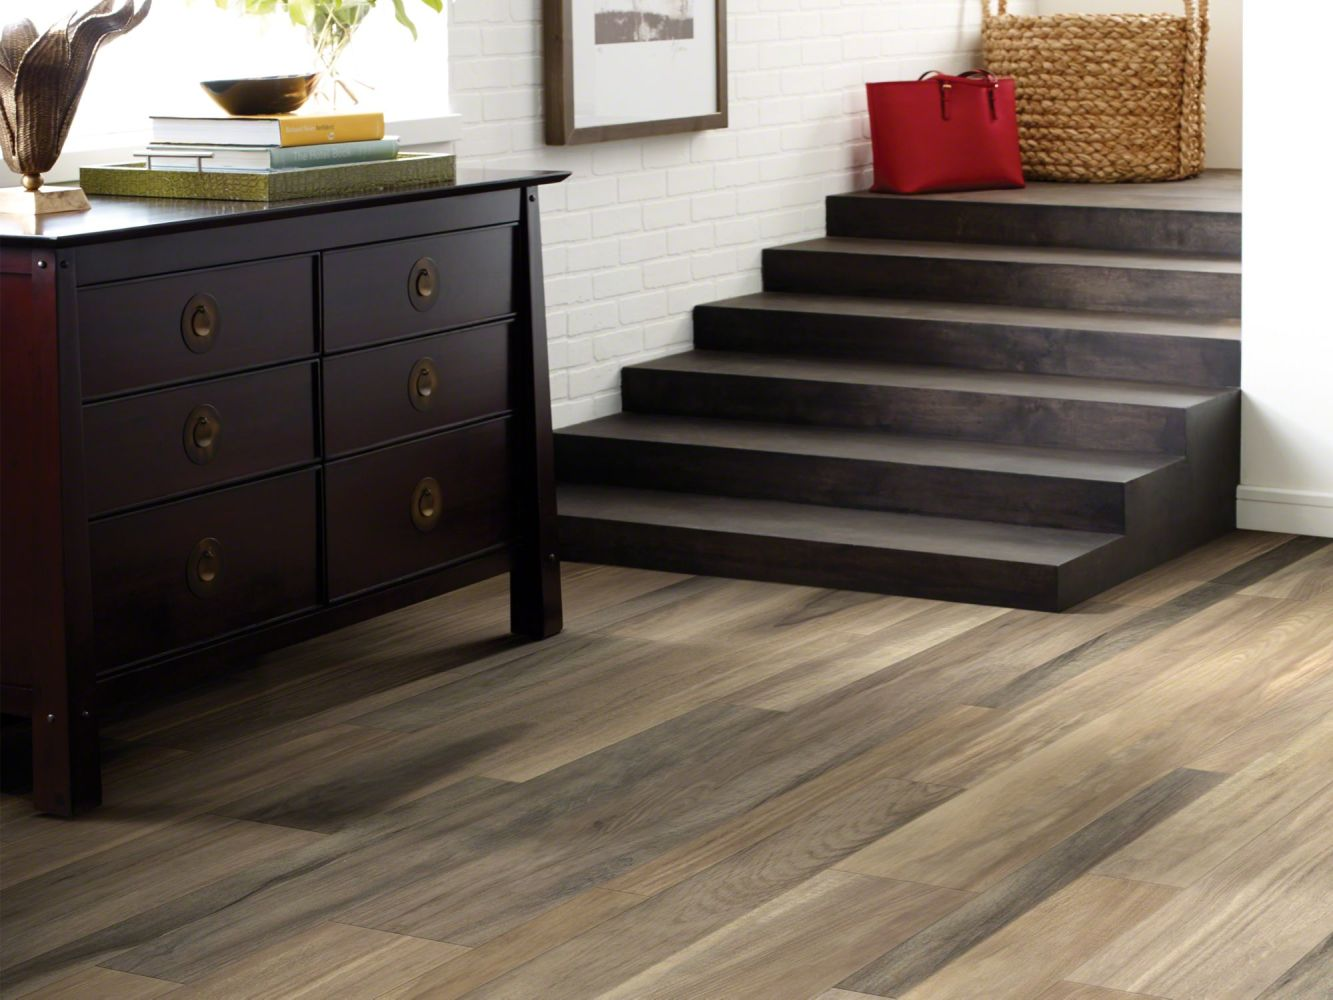 Shaw Floors Vinyl Residential Alto Mix Plus Campania Jatoba 00131_2662V